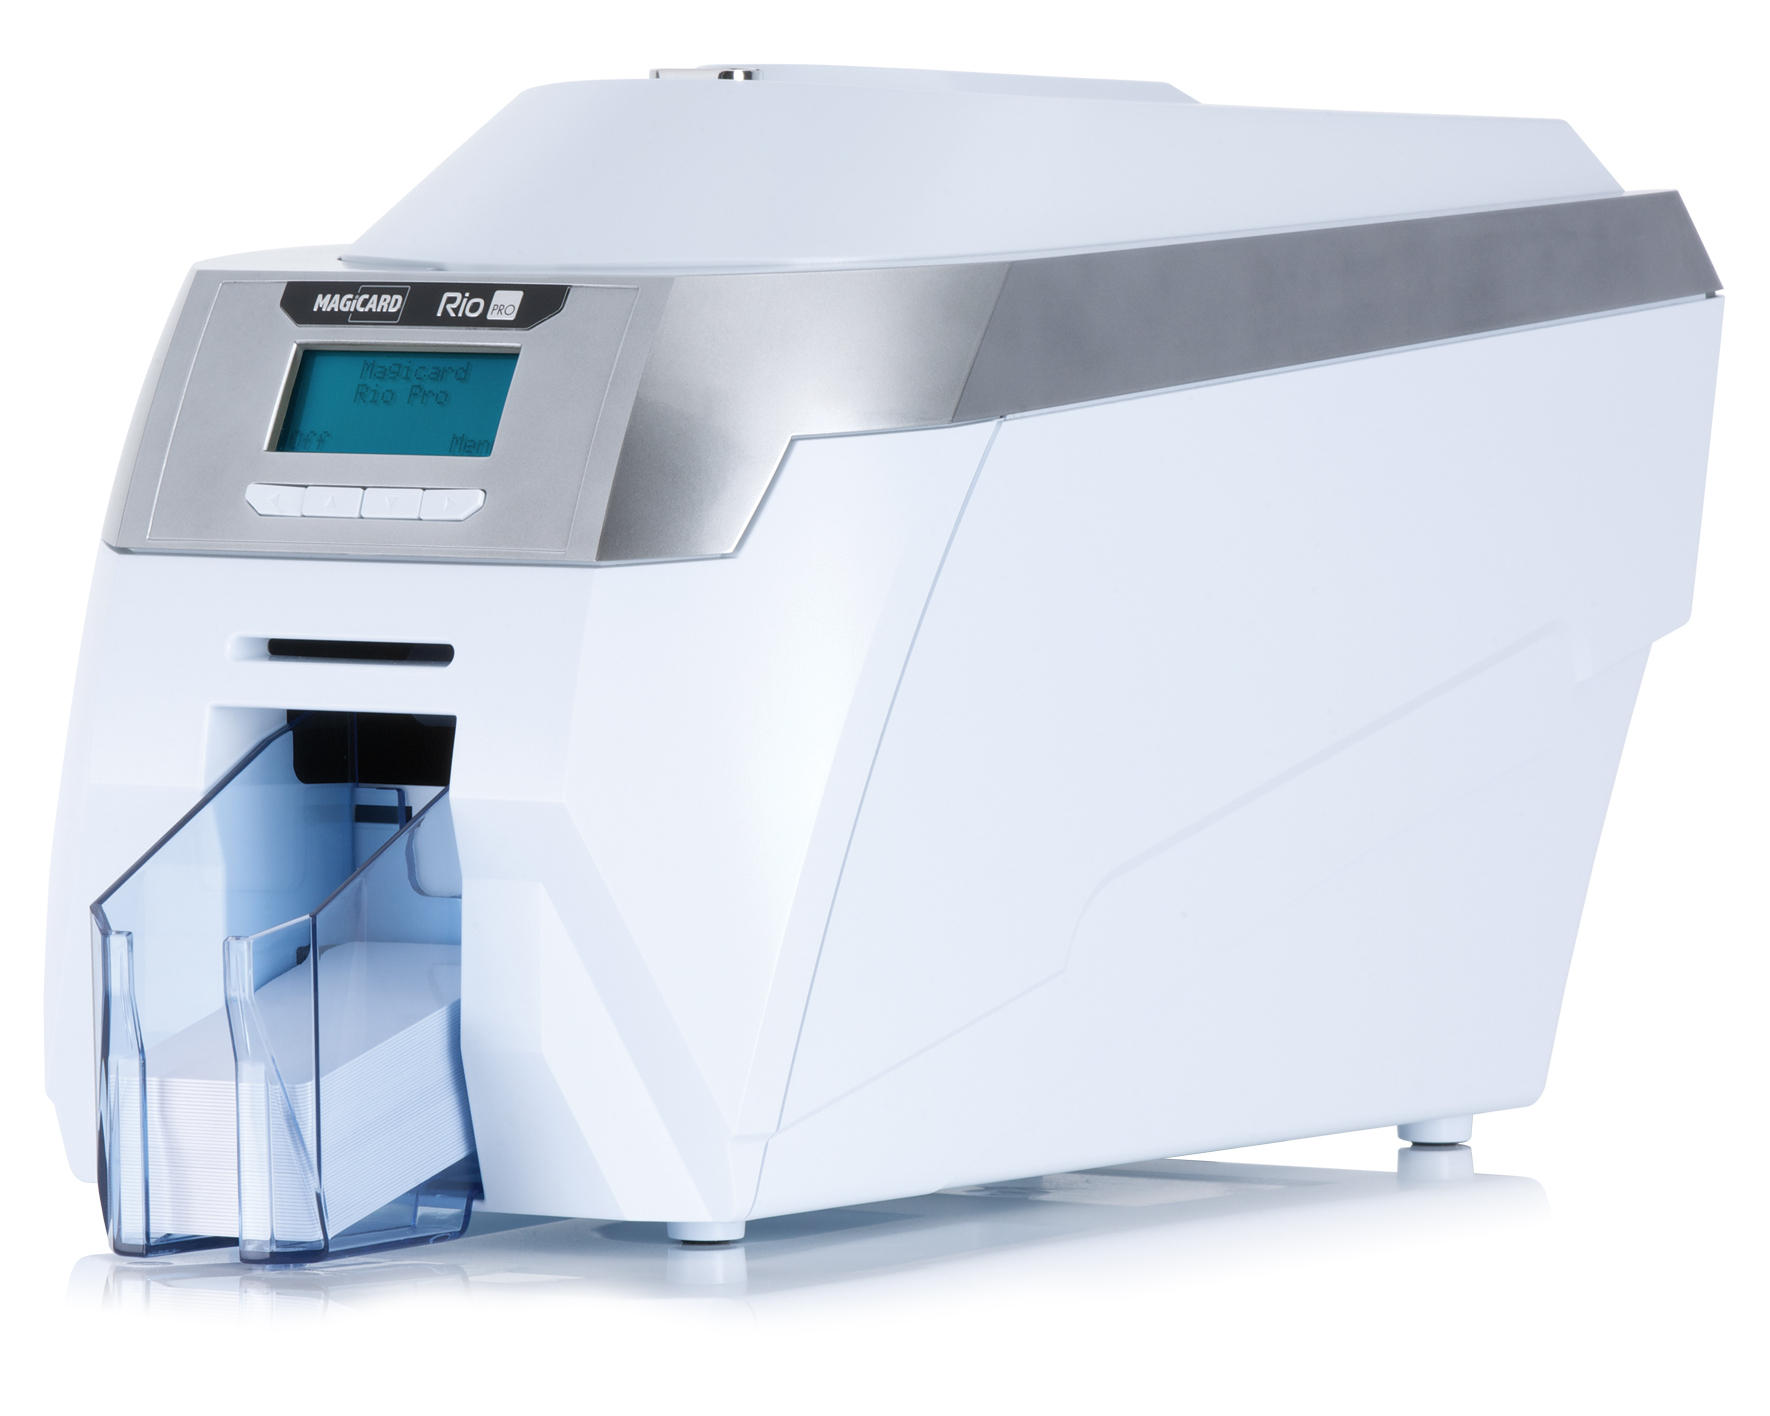 Congratulate, the magnetic strip printer thank for